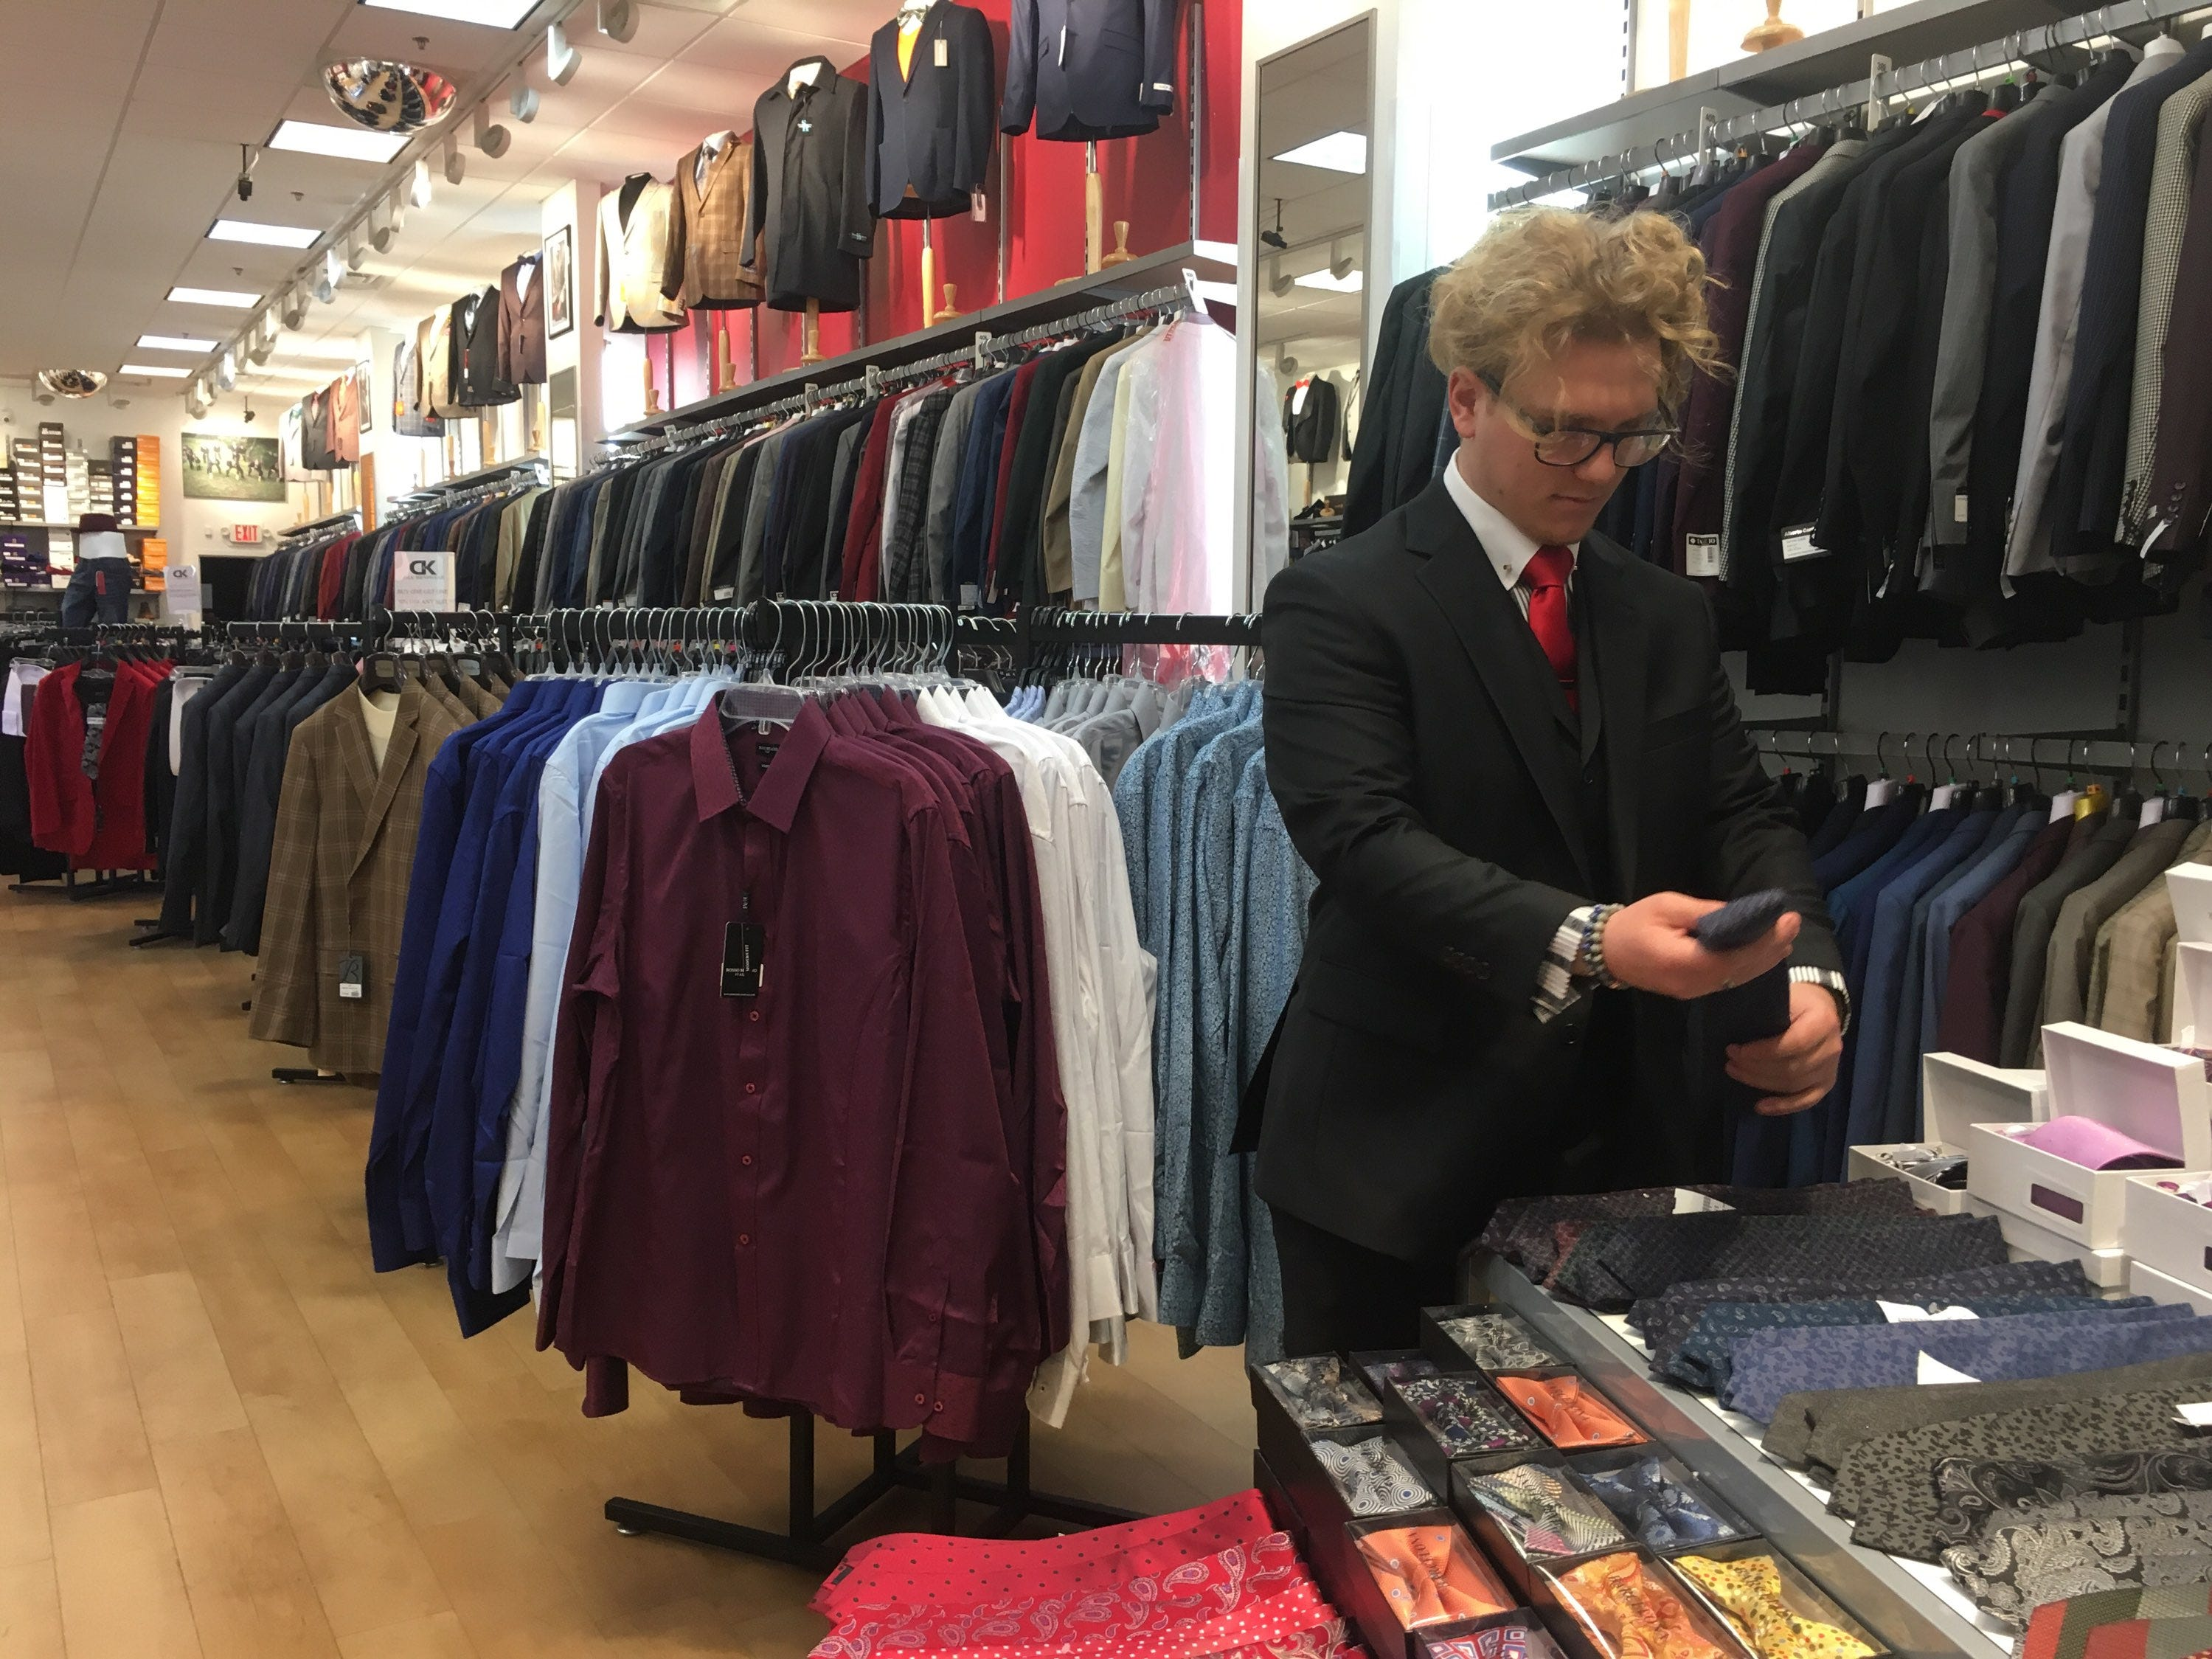 Austin Aderholt stocks men's neckties at D&K Menswear, a store that's entering its first Christmas shopping season in the Clarksville regional mall.